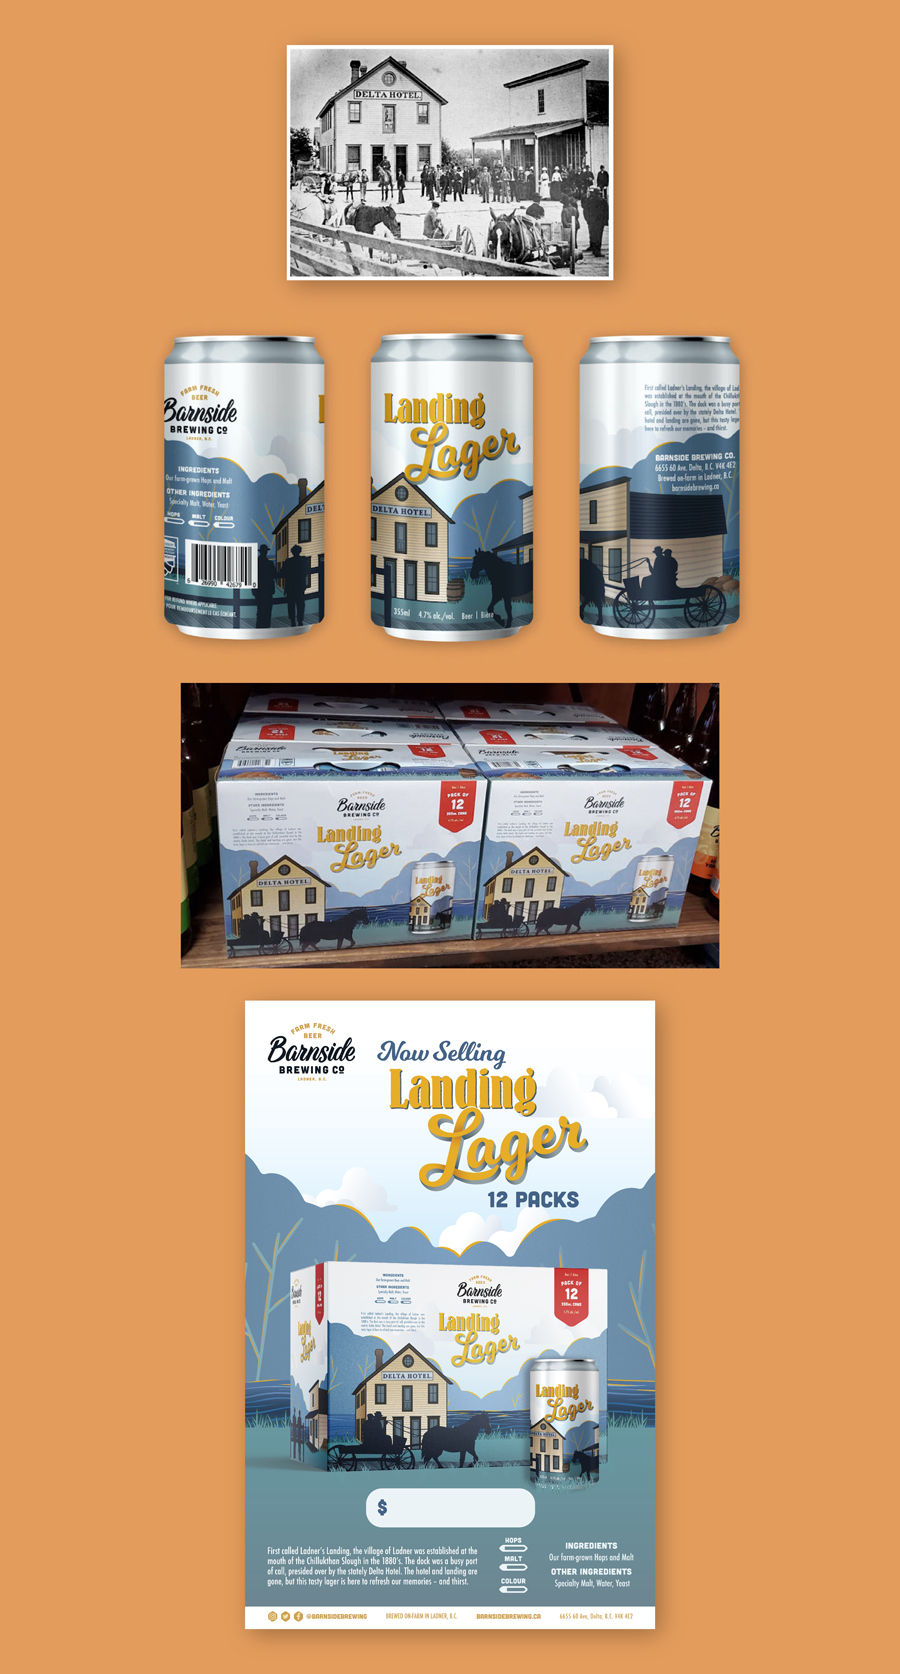 Long image that shows: 1. an archival photo of the Ladner's Landing area in the 1910's. 2. the illustrated can design, shown on three cans. 3. a photo of the 12 pack case box on a store shelf. 4. a poster promoting the Landing Lager beer.